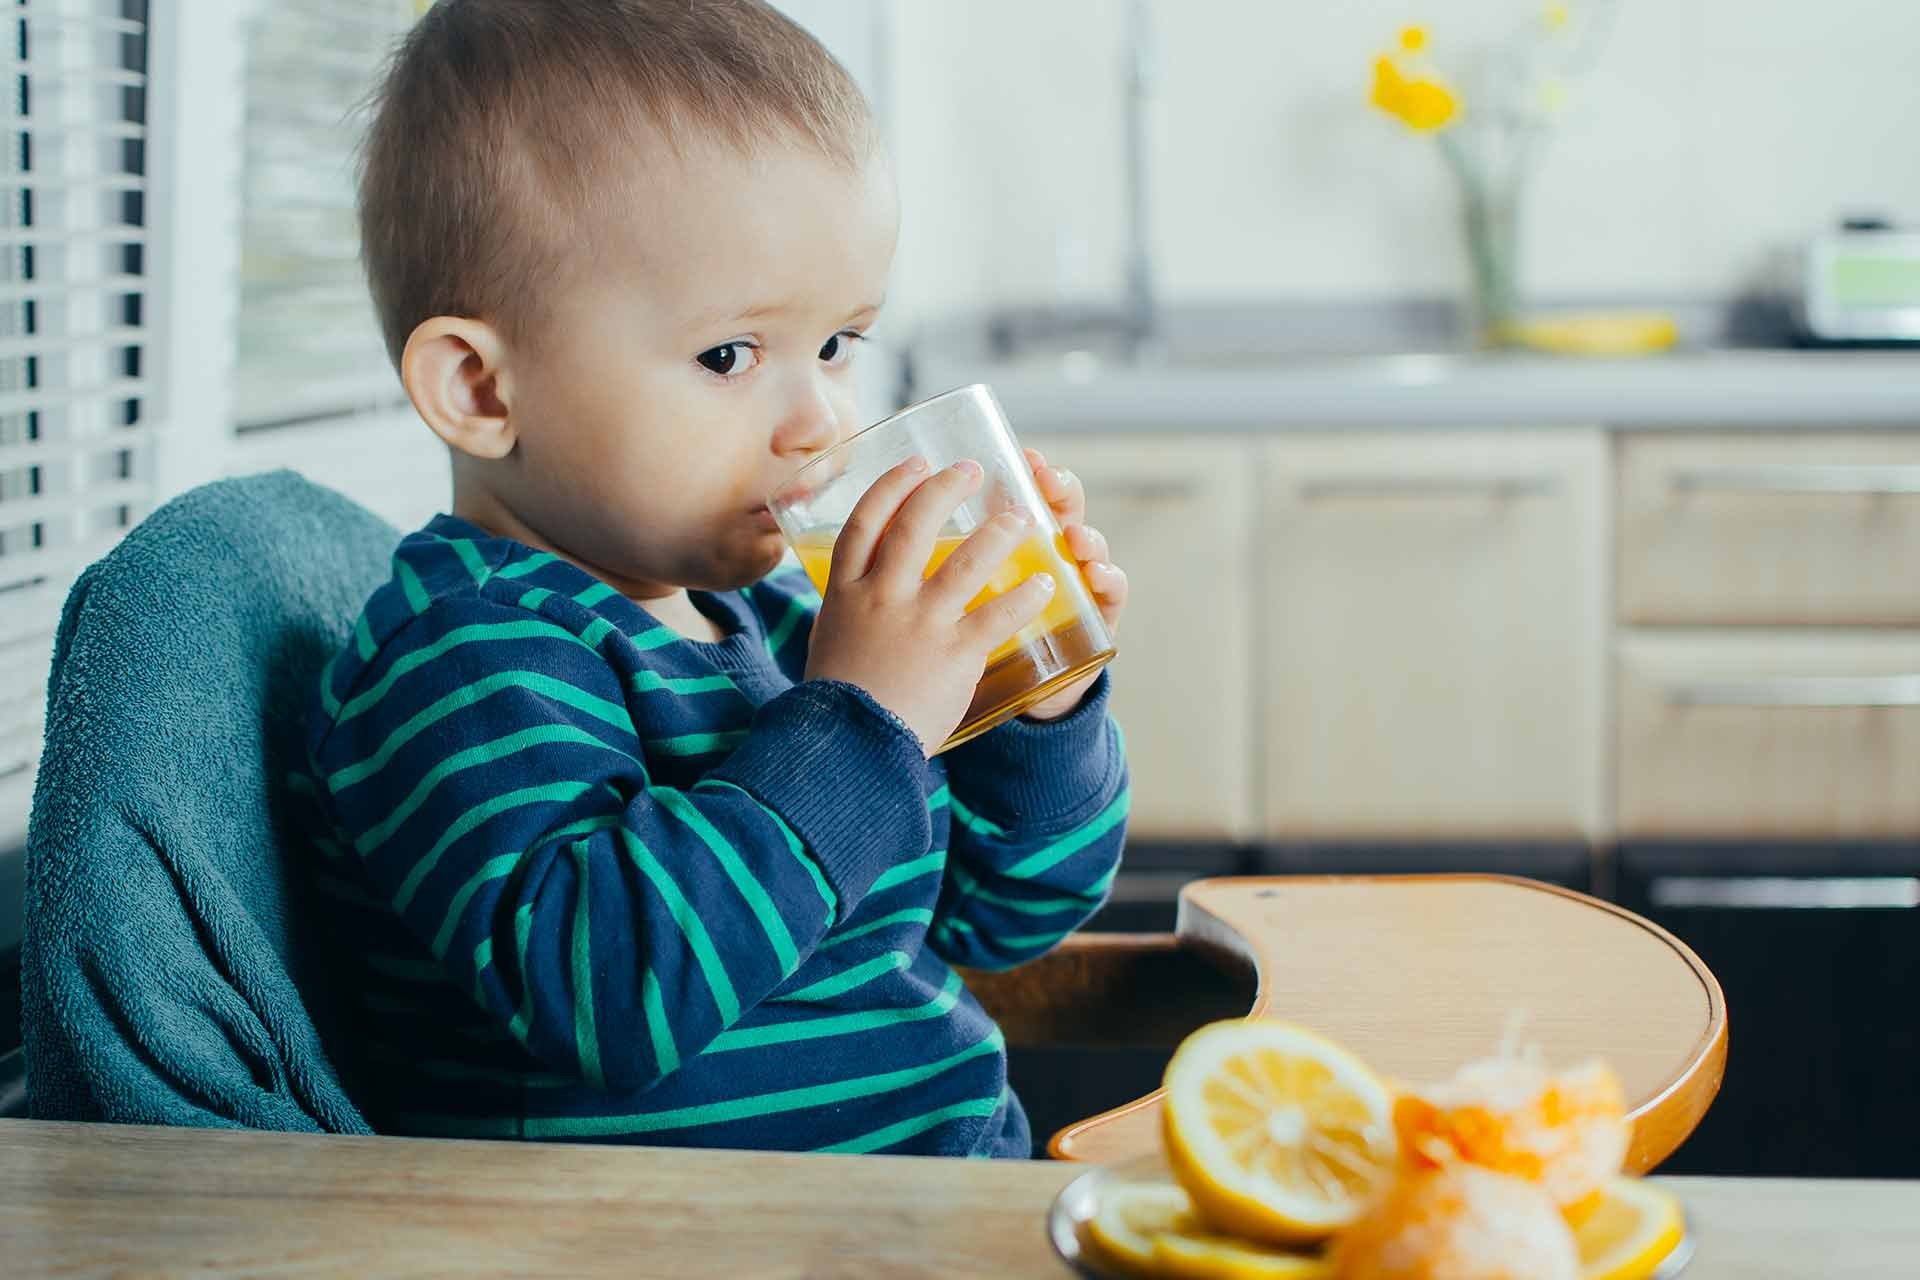 Is-it-healthy-for-children-to-eat-juice